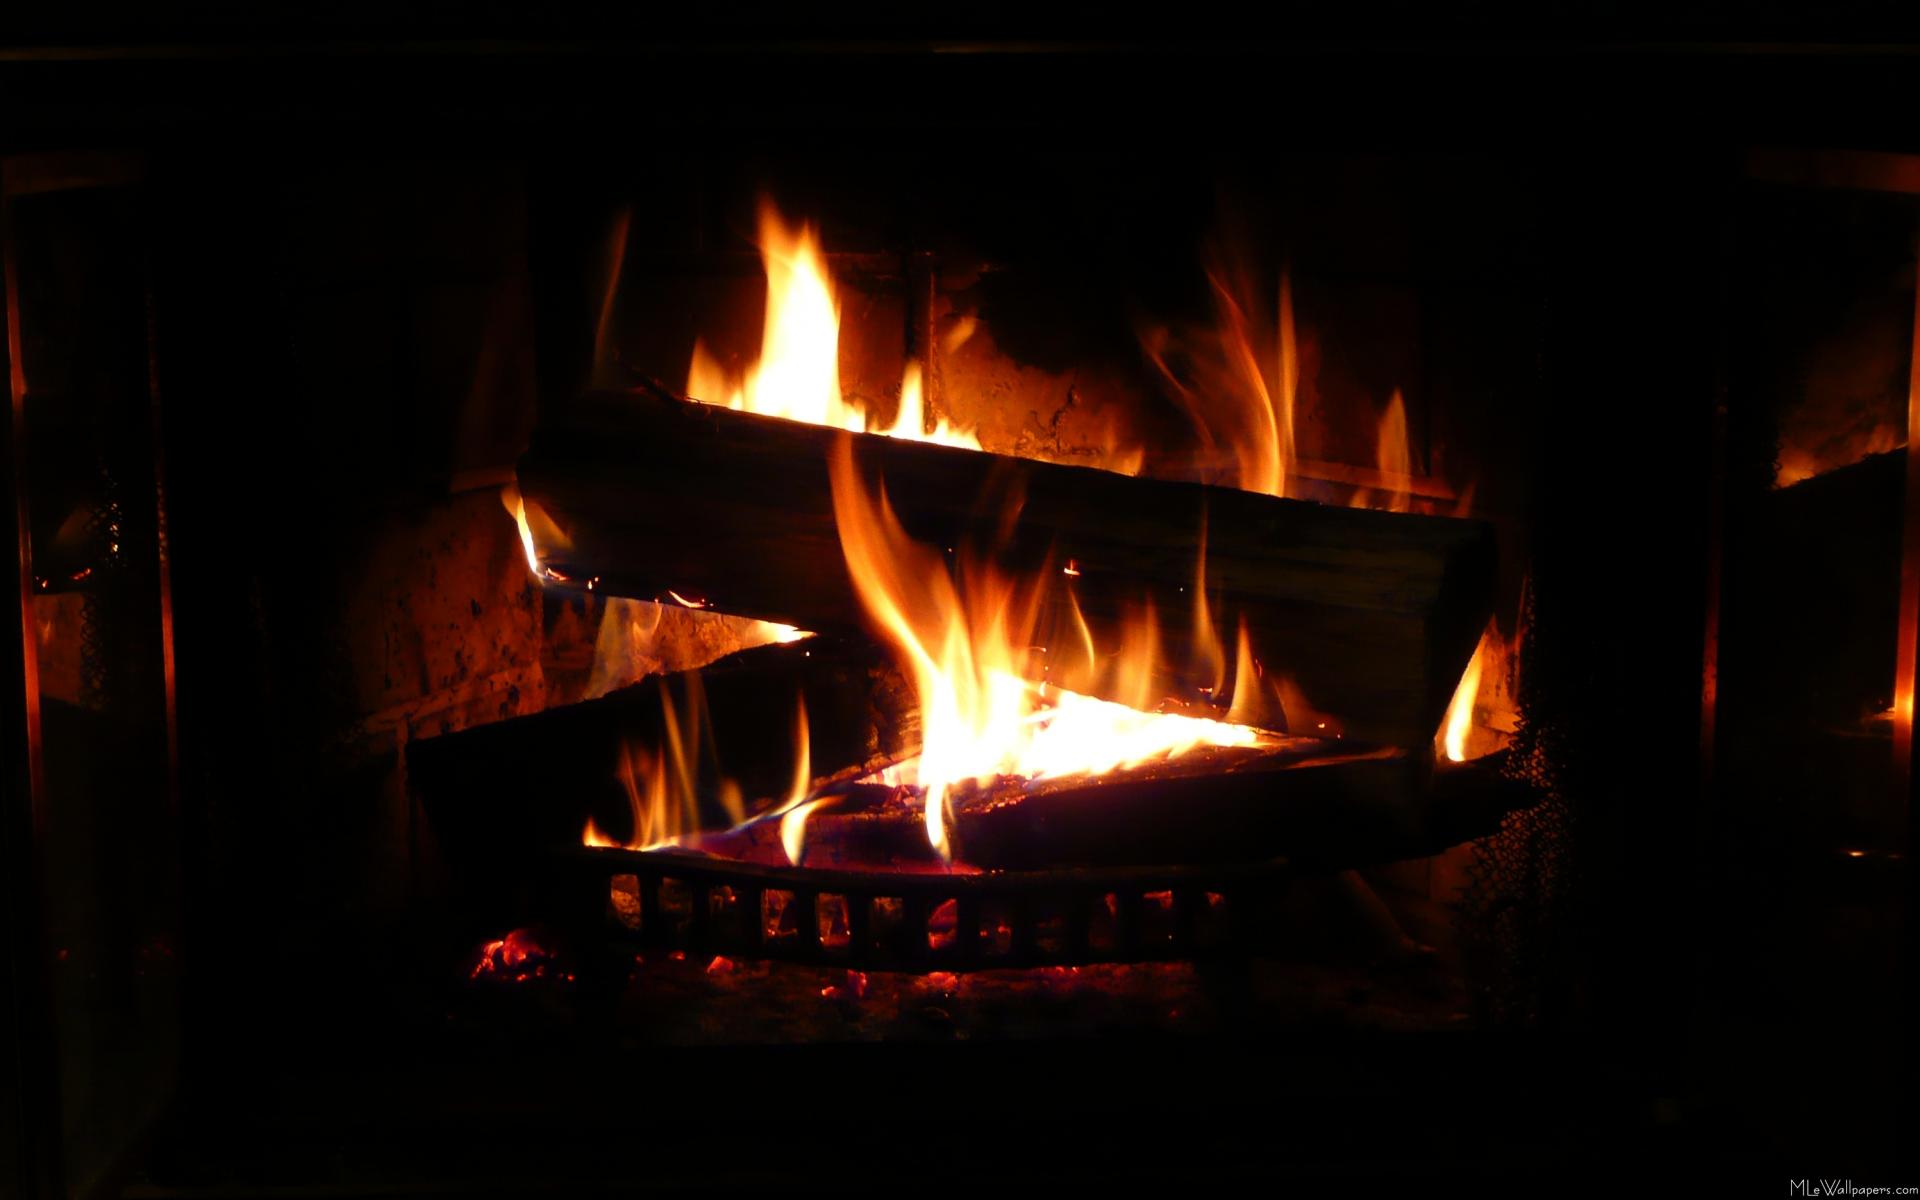 Interactive Fireplace Wallpaper Images - Reverse Search